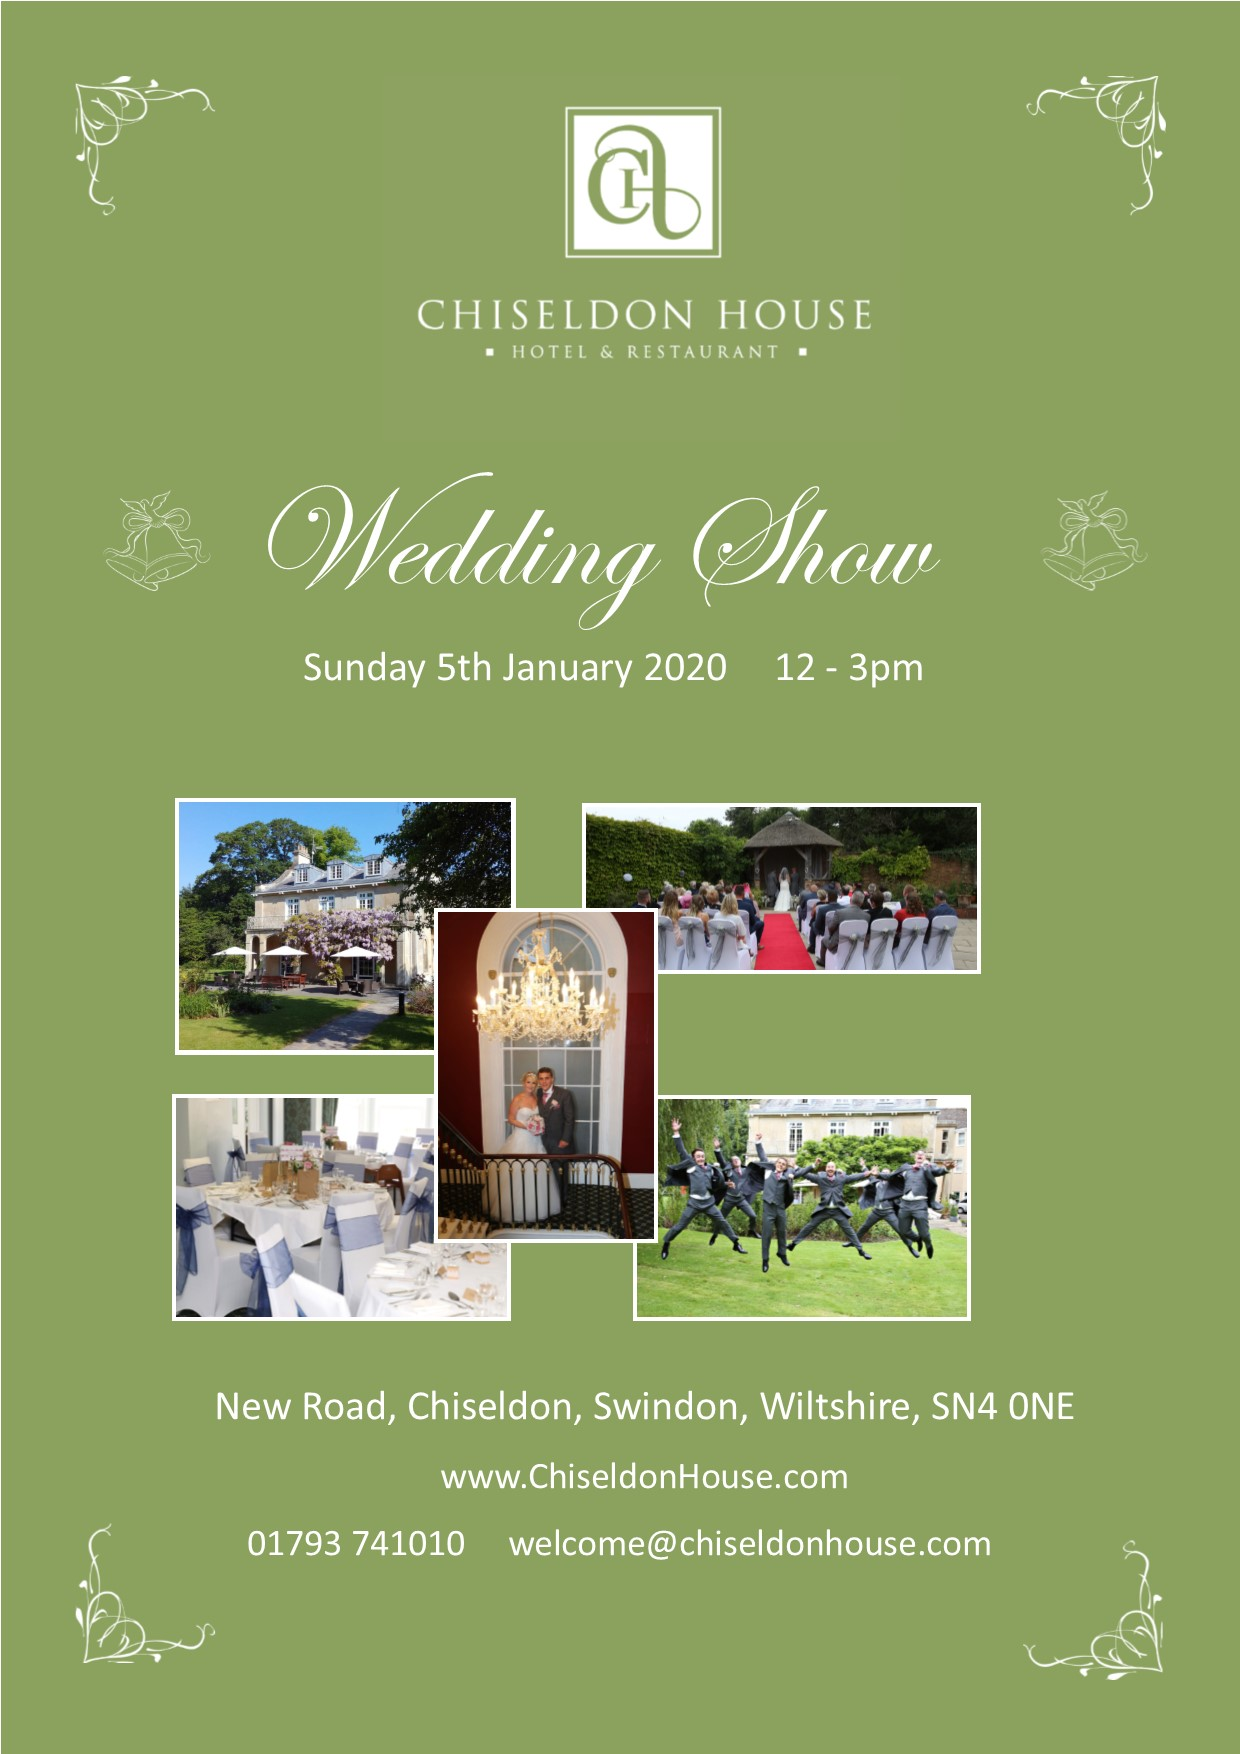 Chiseldon House Wedding Show